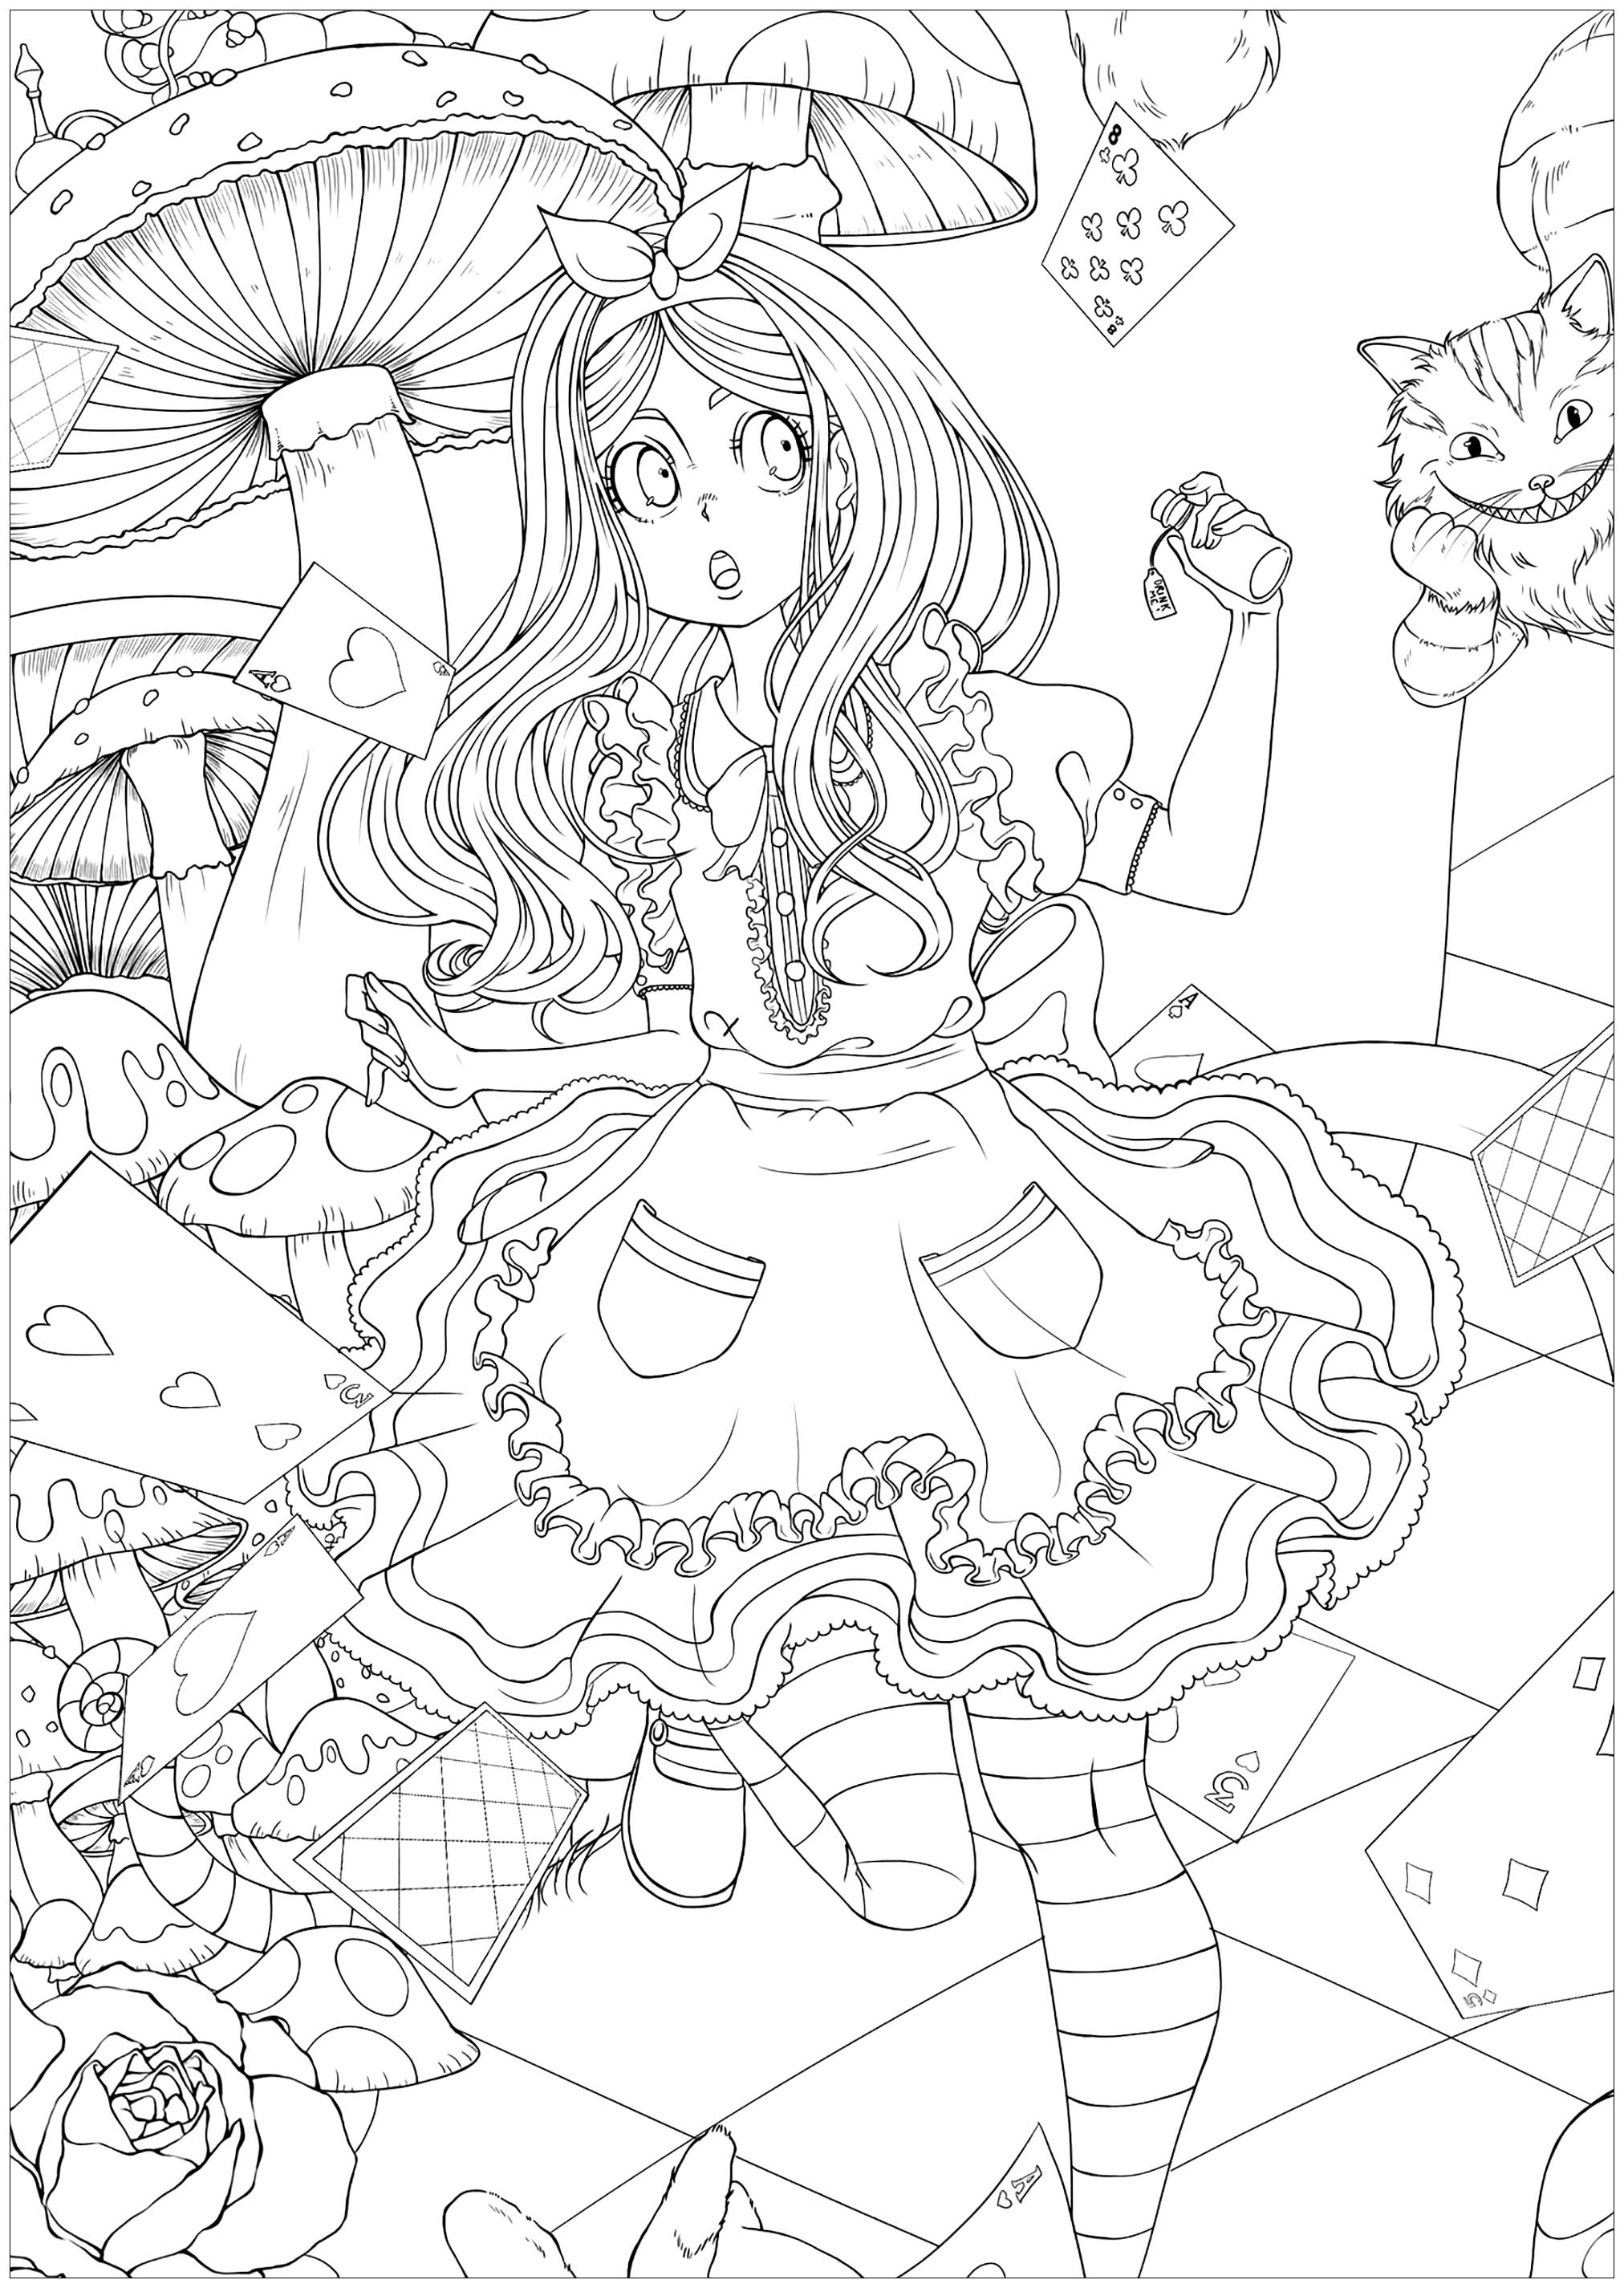 Tales coloring page to download